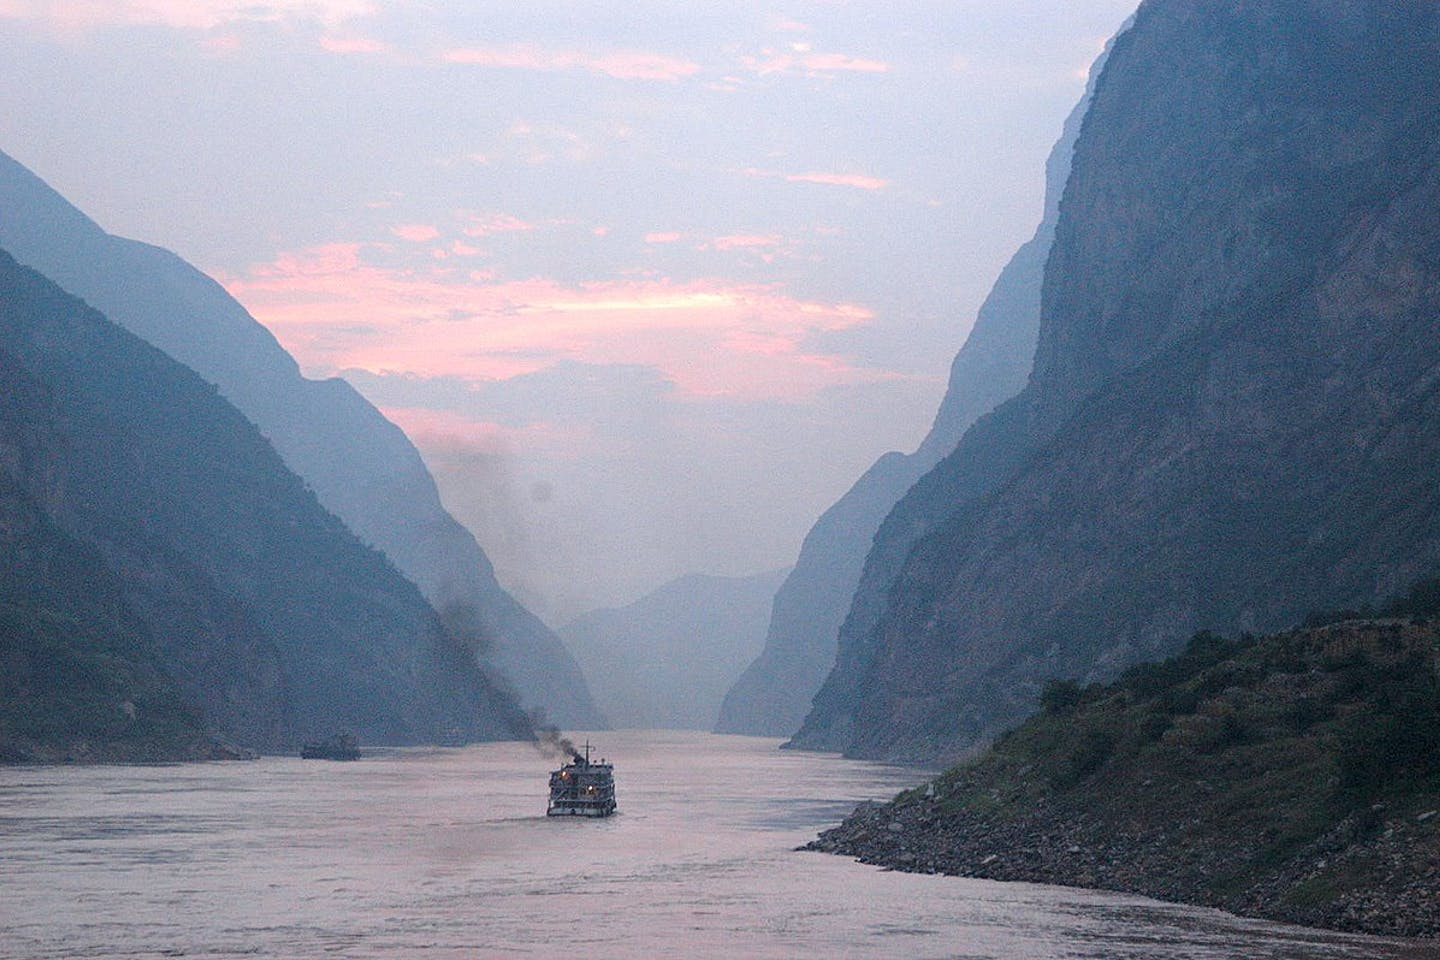 yangtze river at dusk